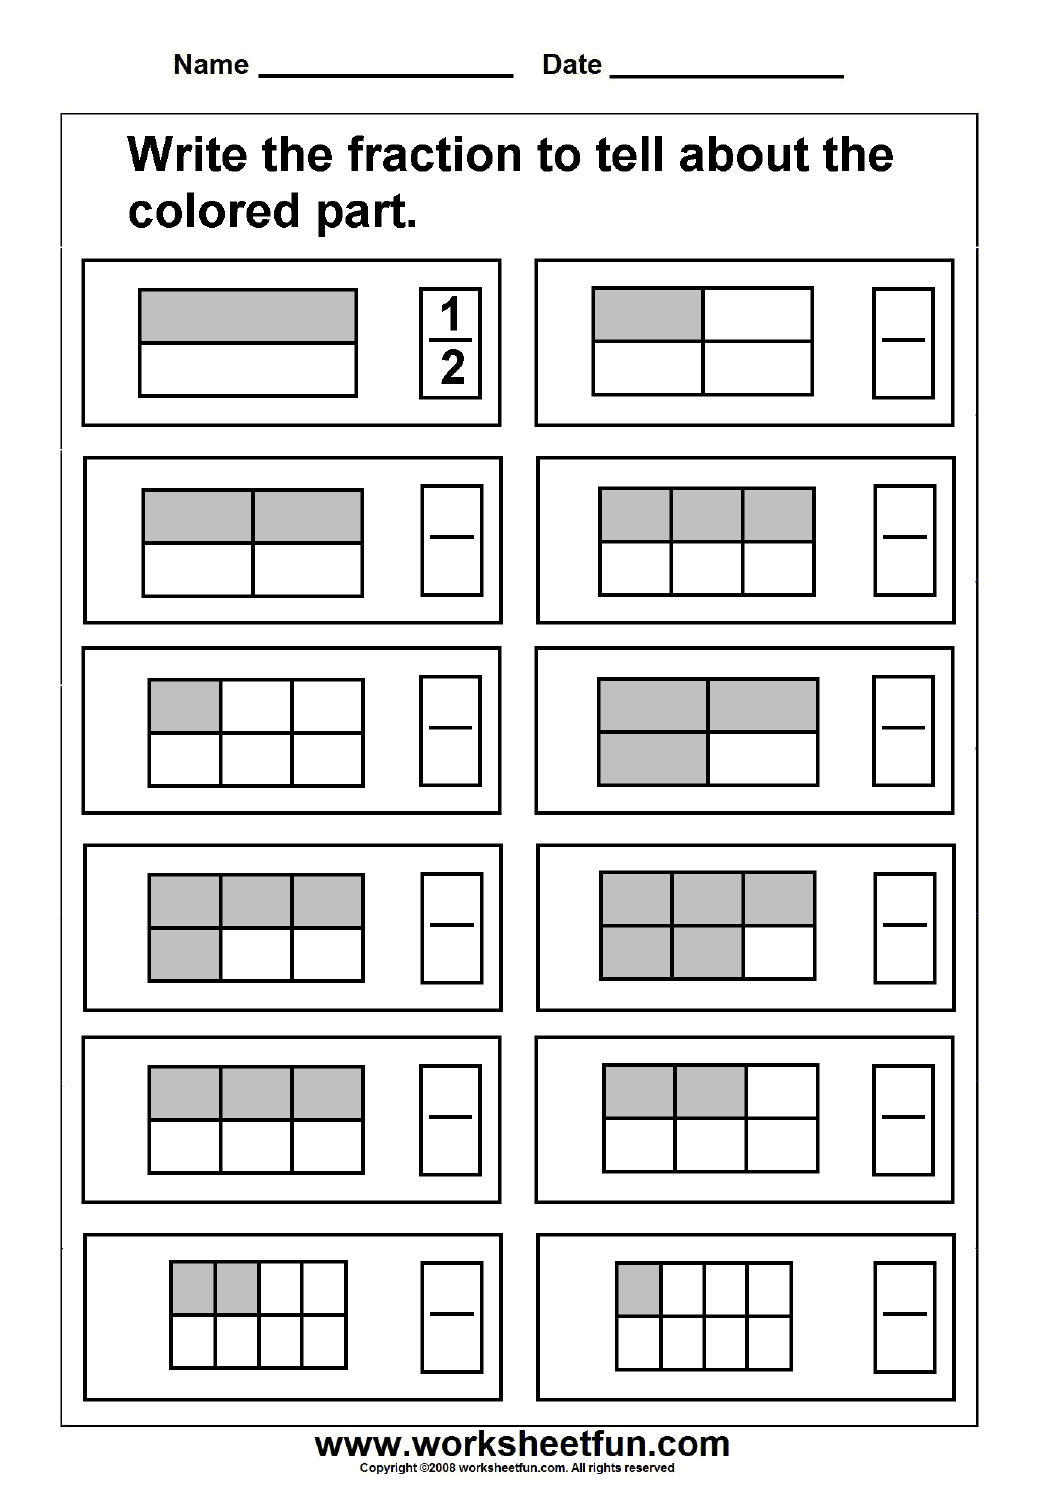 Worksheet Math Models Worksheets fraction model free printable worksheets worksheetfun 3 worksheets